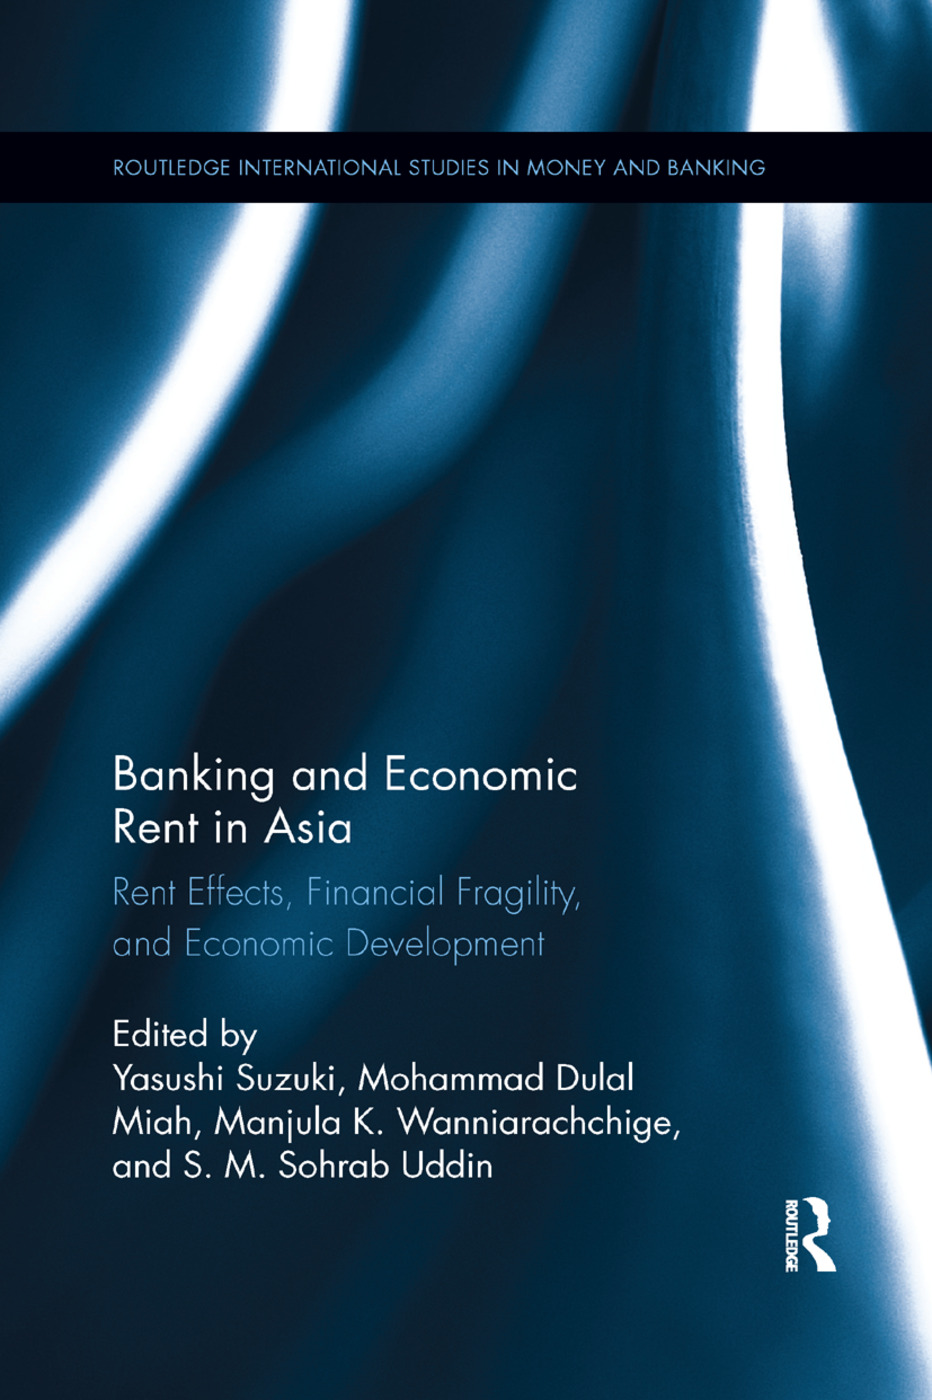 Banking and Economic Rent in Asia: Rent Effects, Financial Fragility, and Economic Development book cover